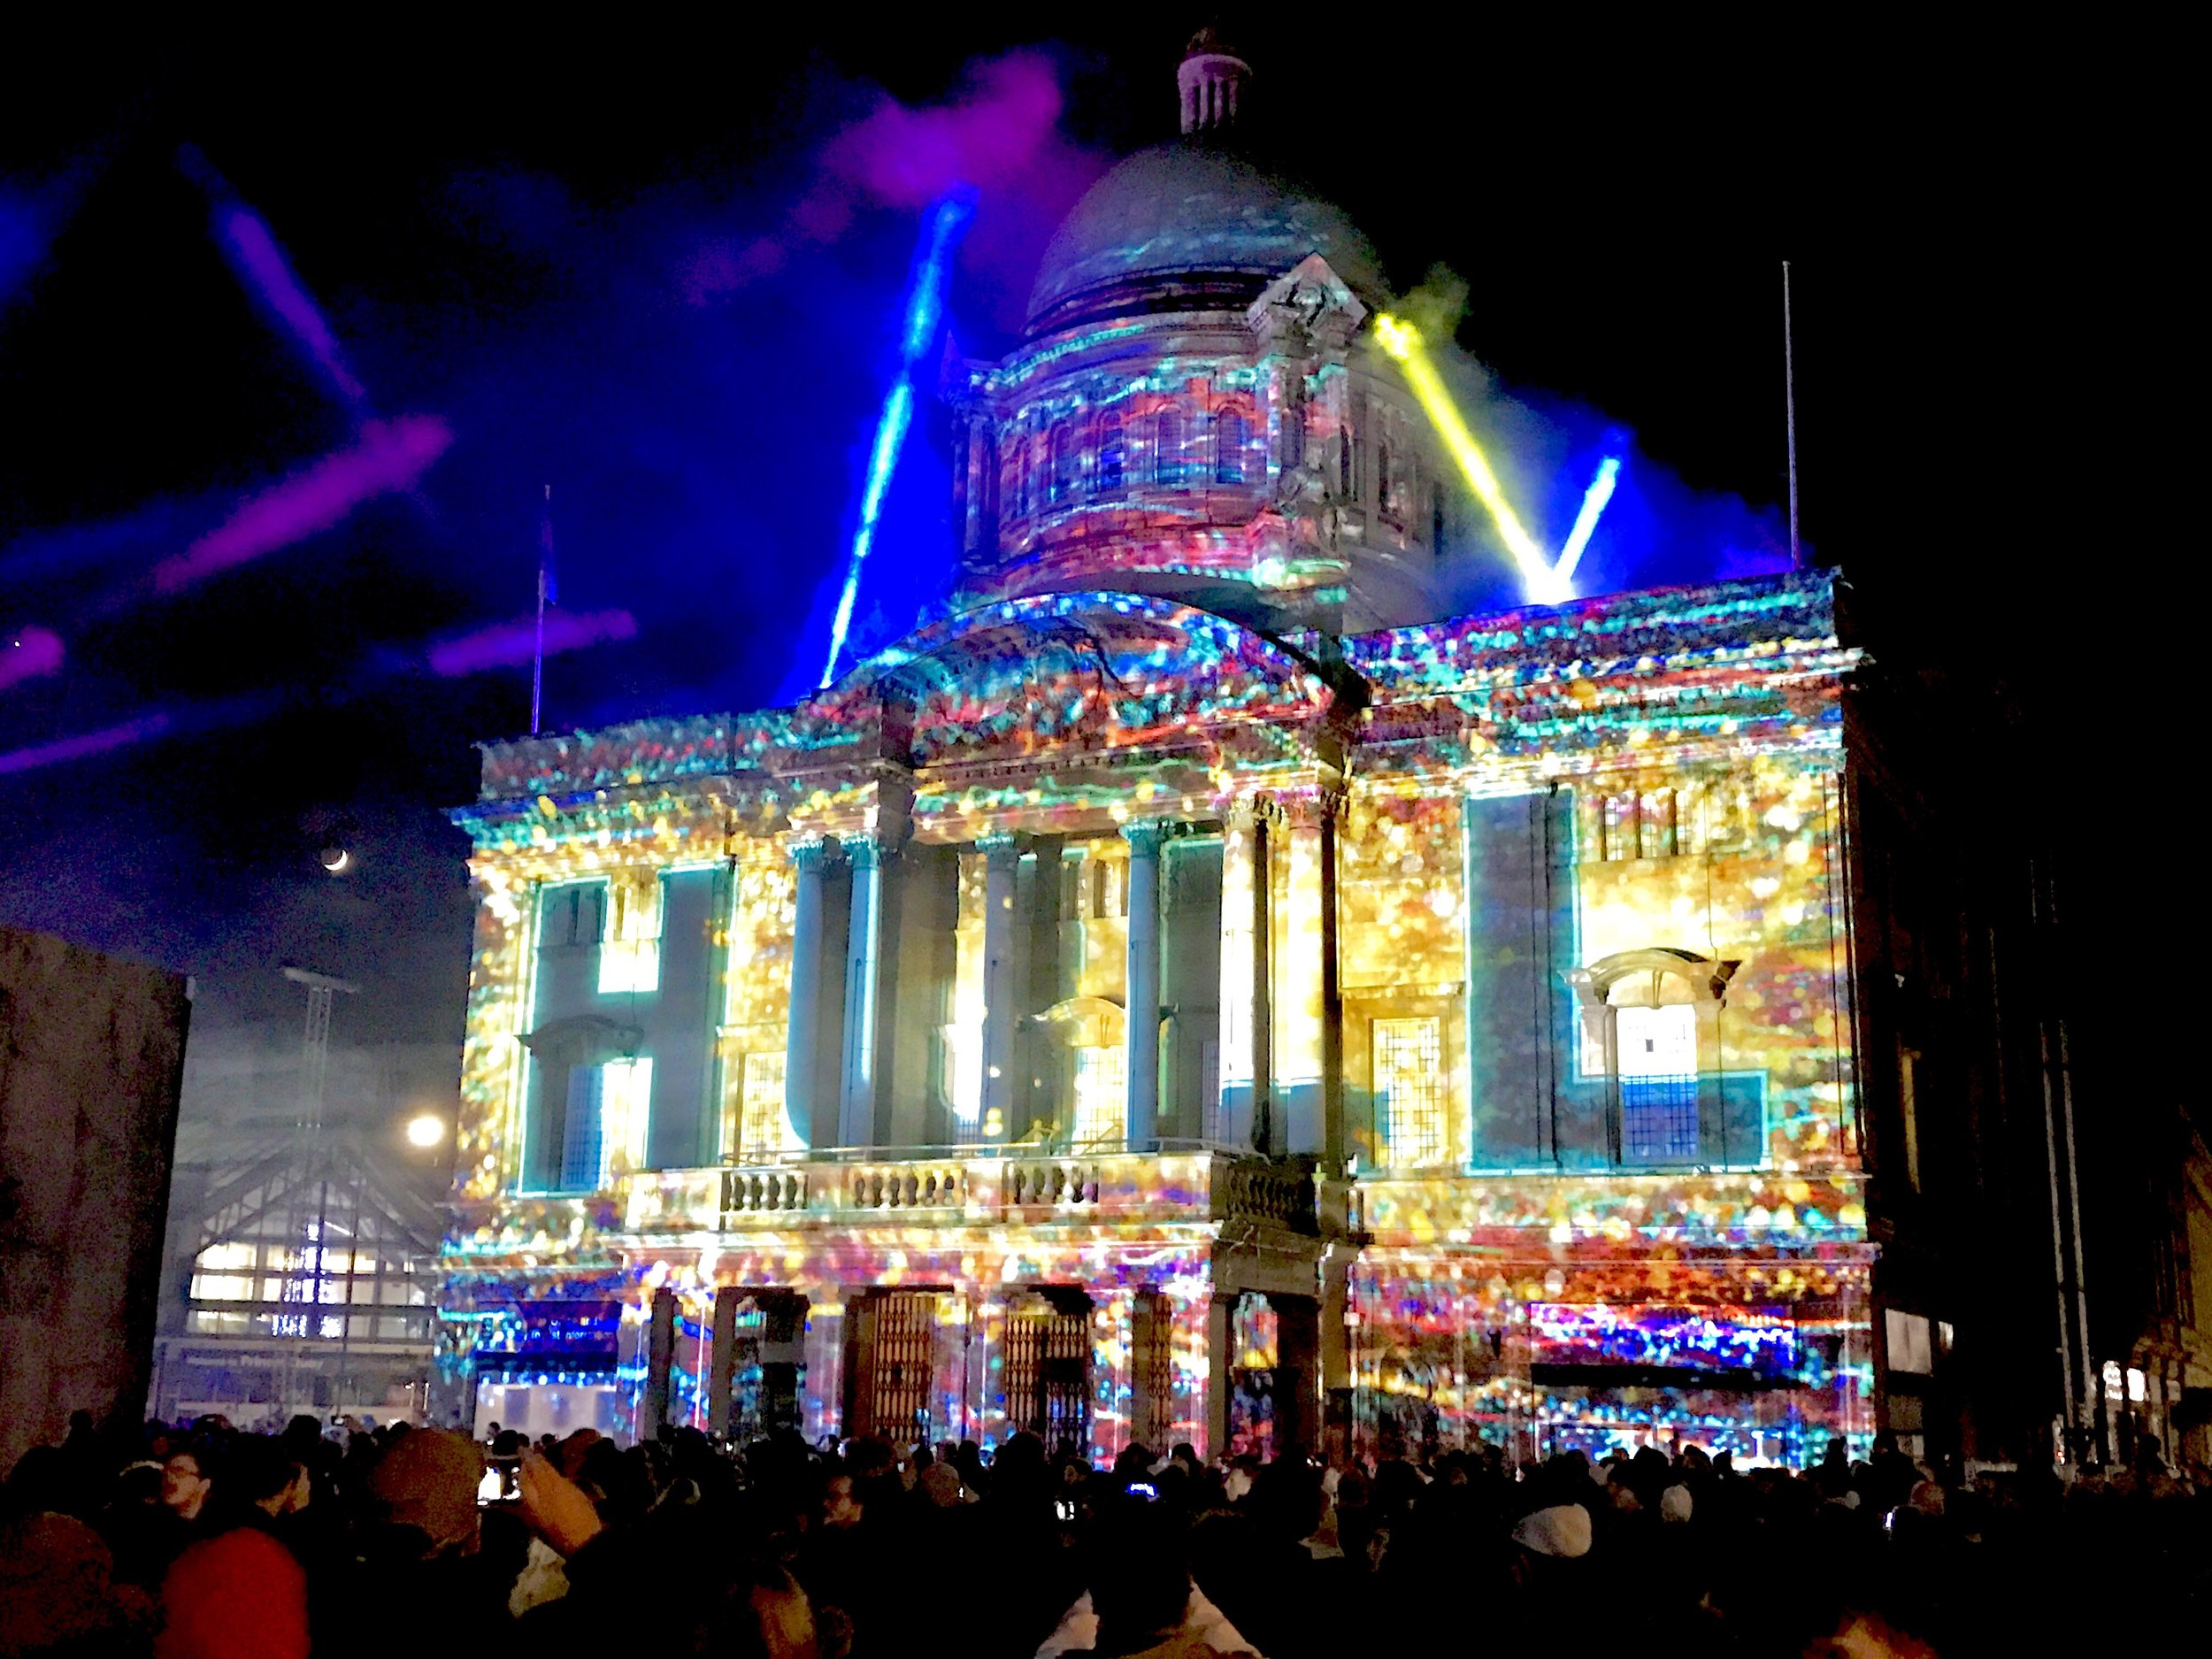 'We Are Hull' by Zsolt Balogh - projections on Hull City Hall for the launch of Hull City of Culture 2017.